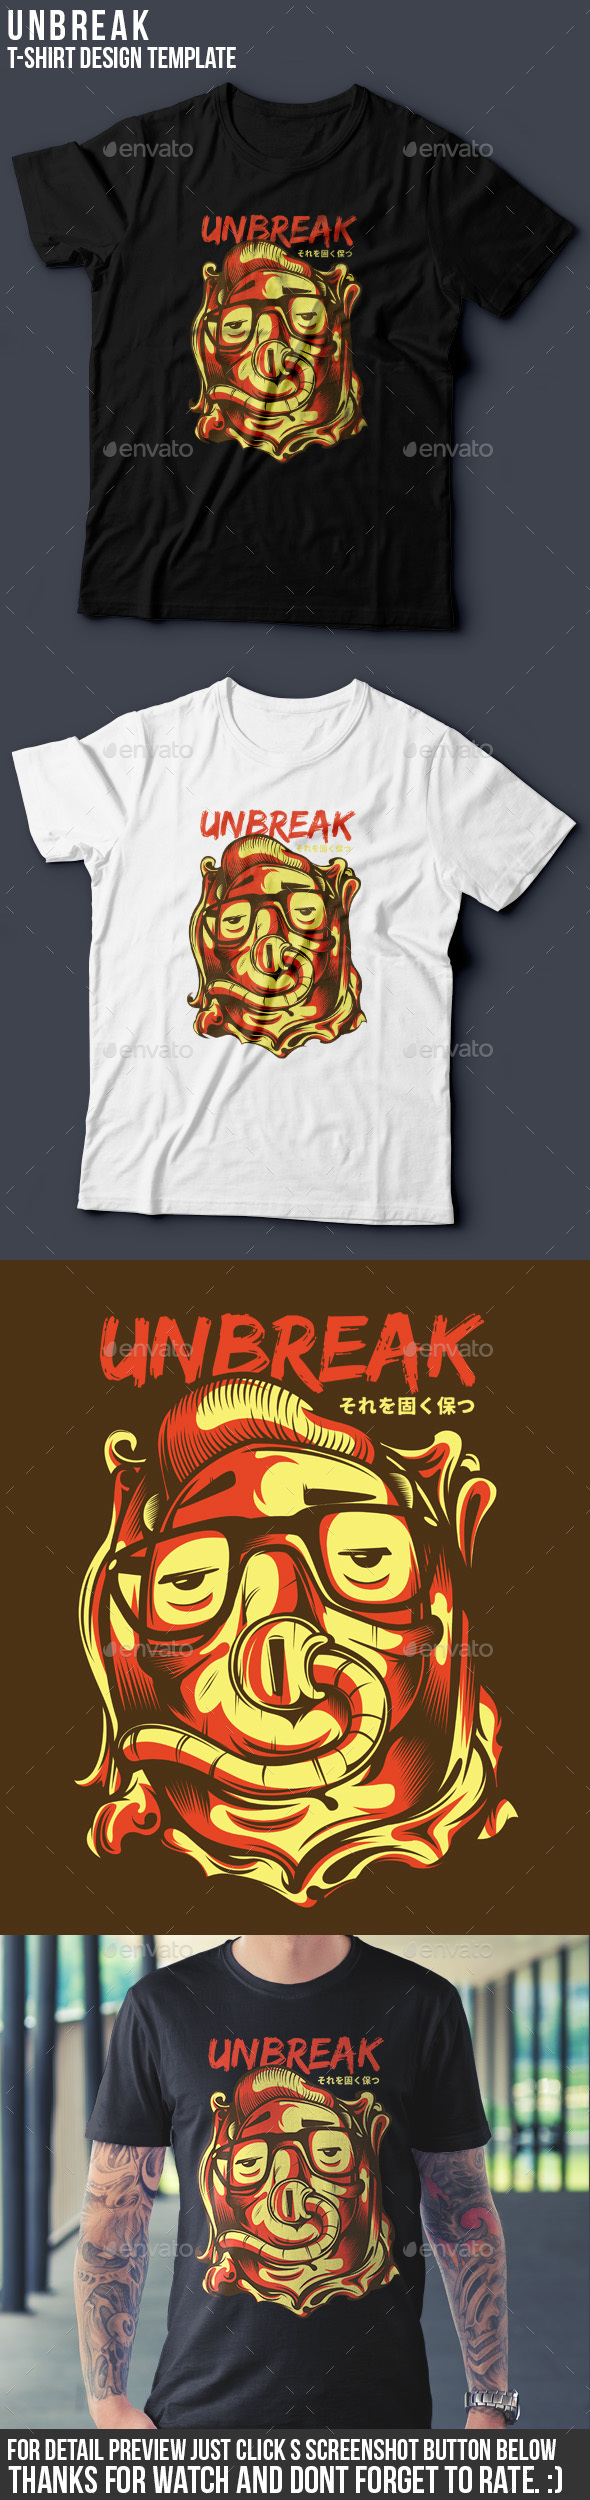 Unbreak T-Shirt Template - Funny Designs